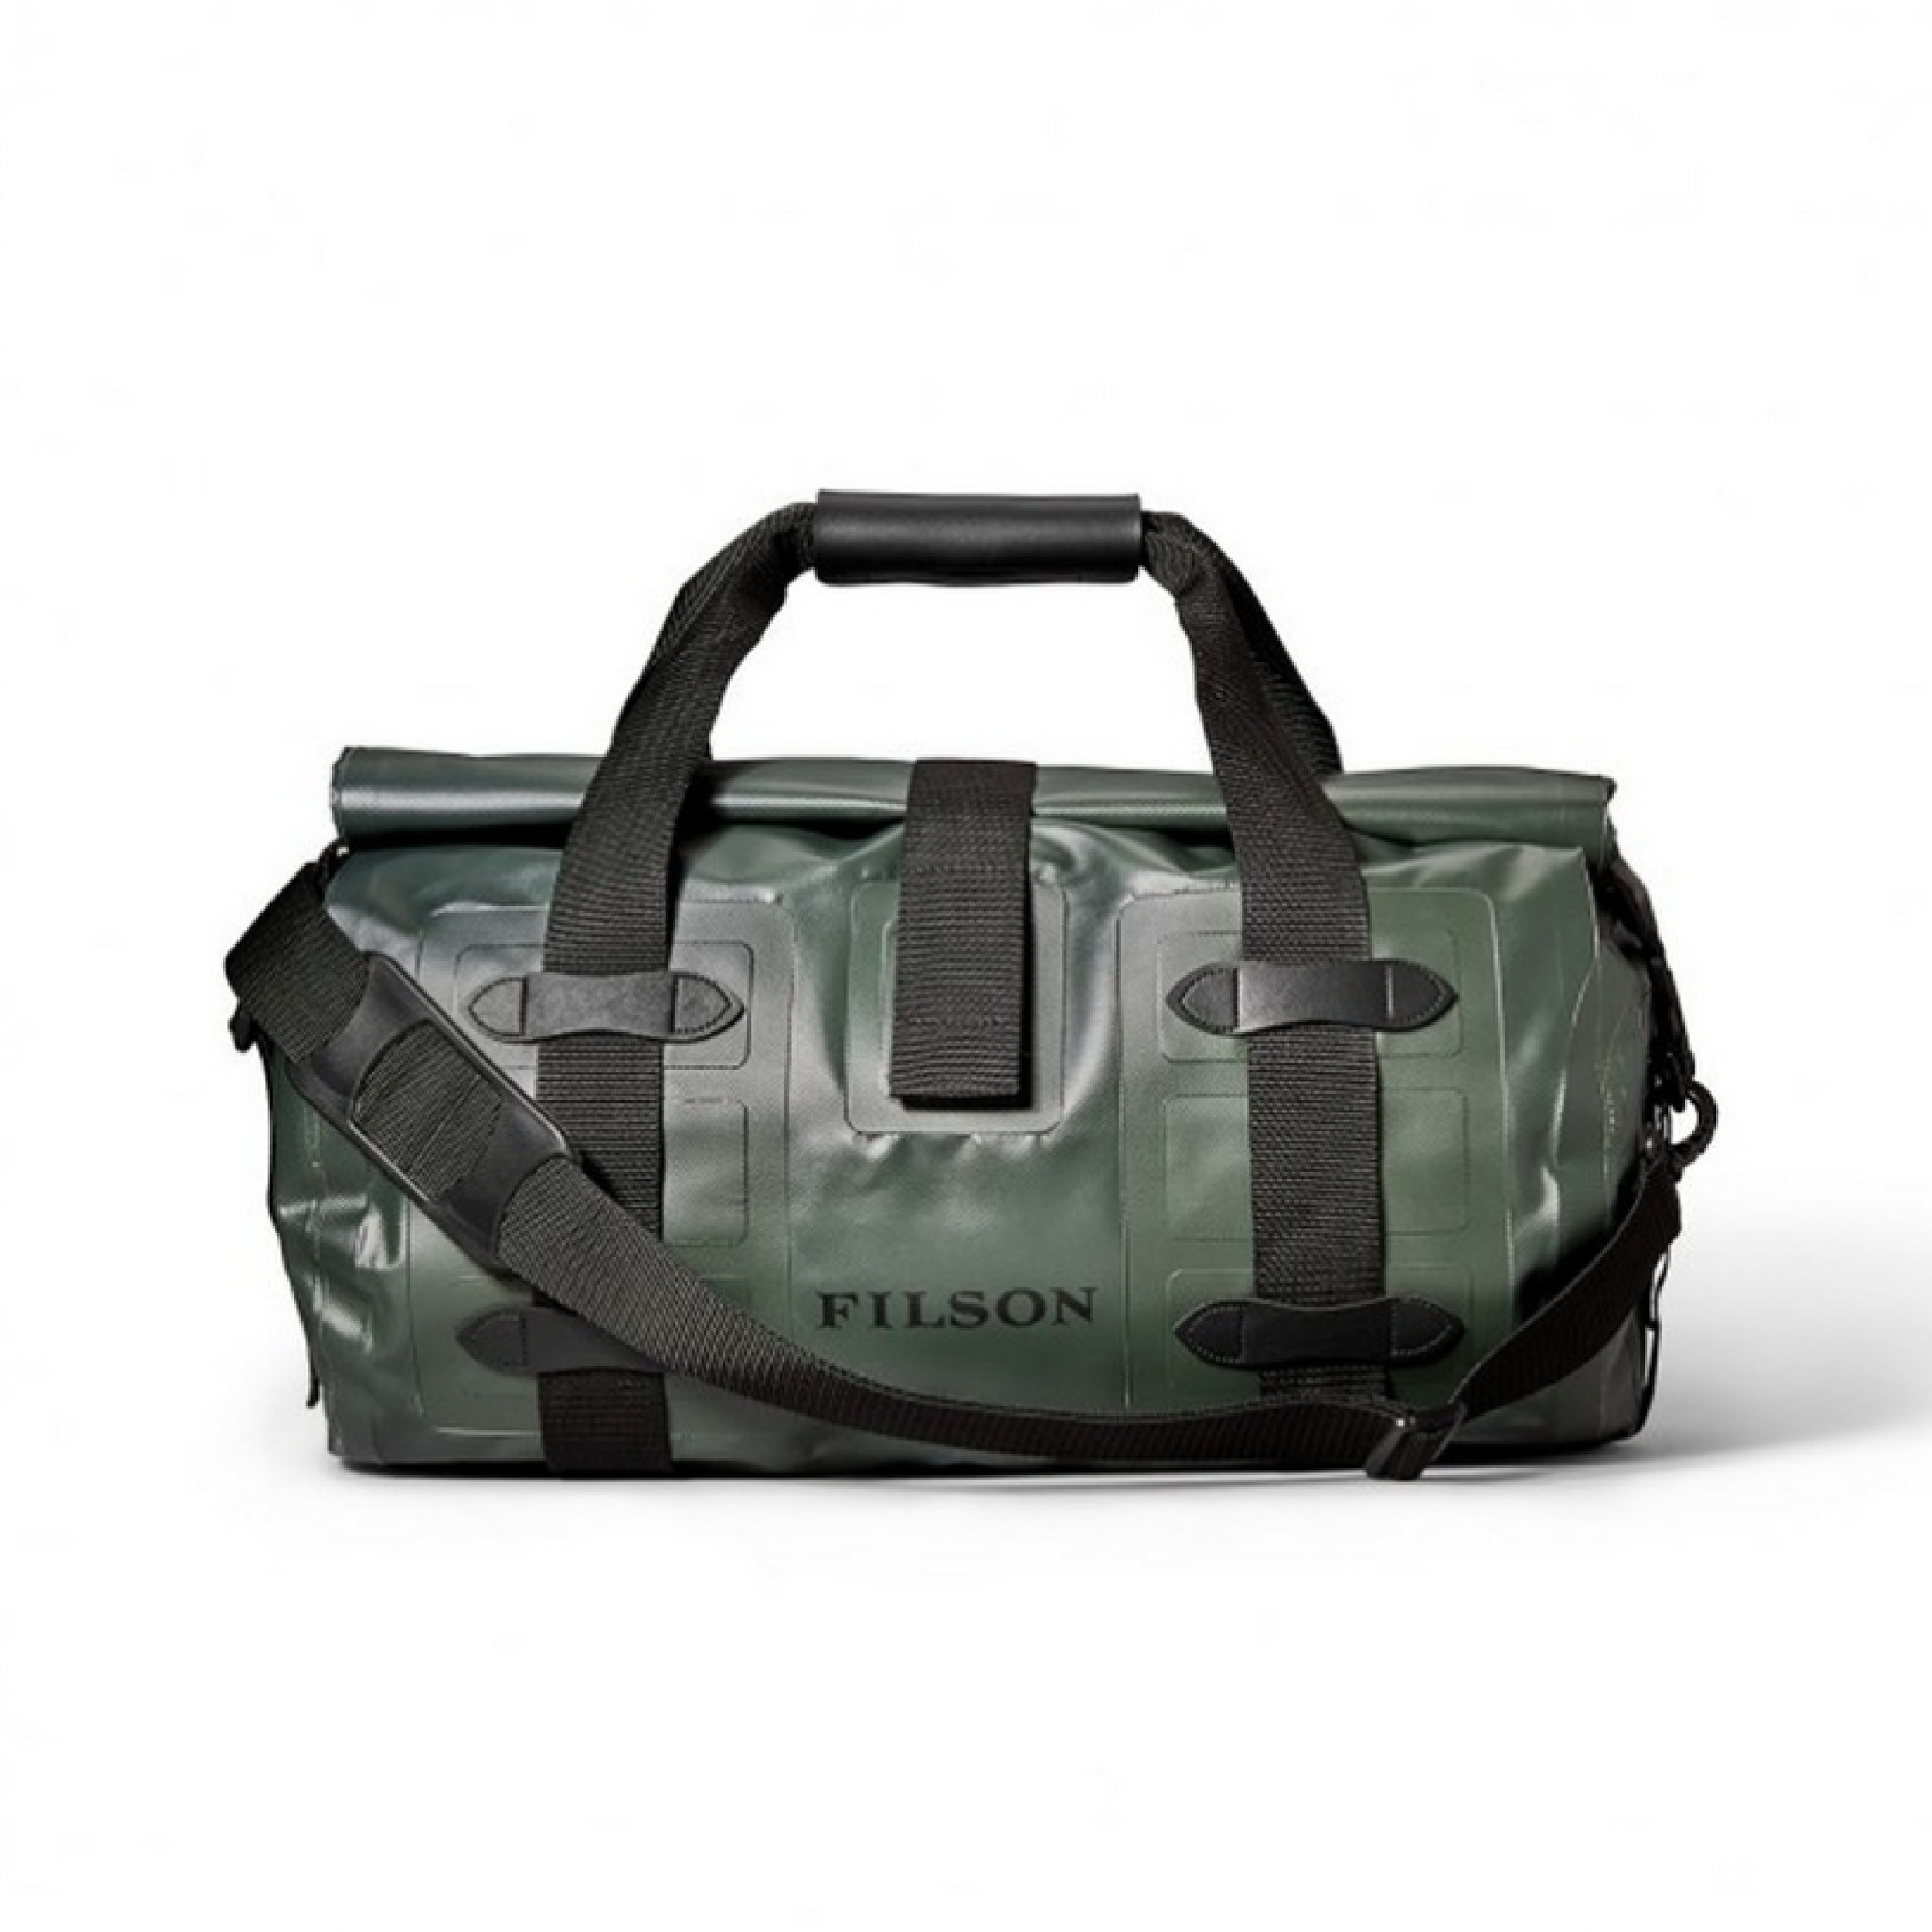 DRY DUFFLE BAG SMALL    By  Filson     The toughest waterproof dry bag around. Ready for anything you can throw at it or in it, anytime, anywhere.    SHOP NOW        £80